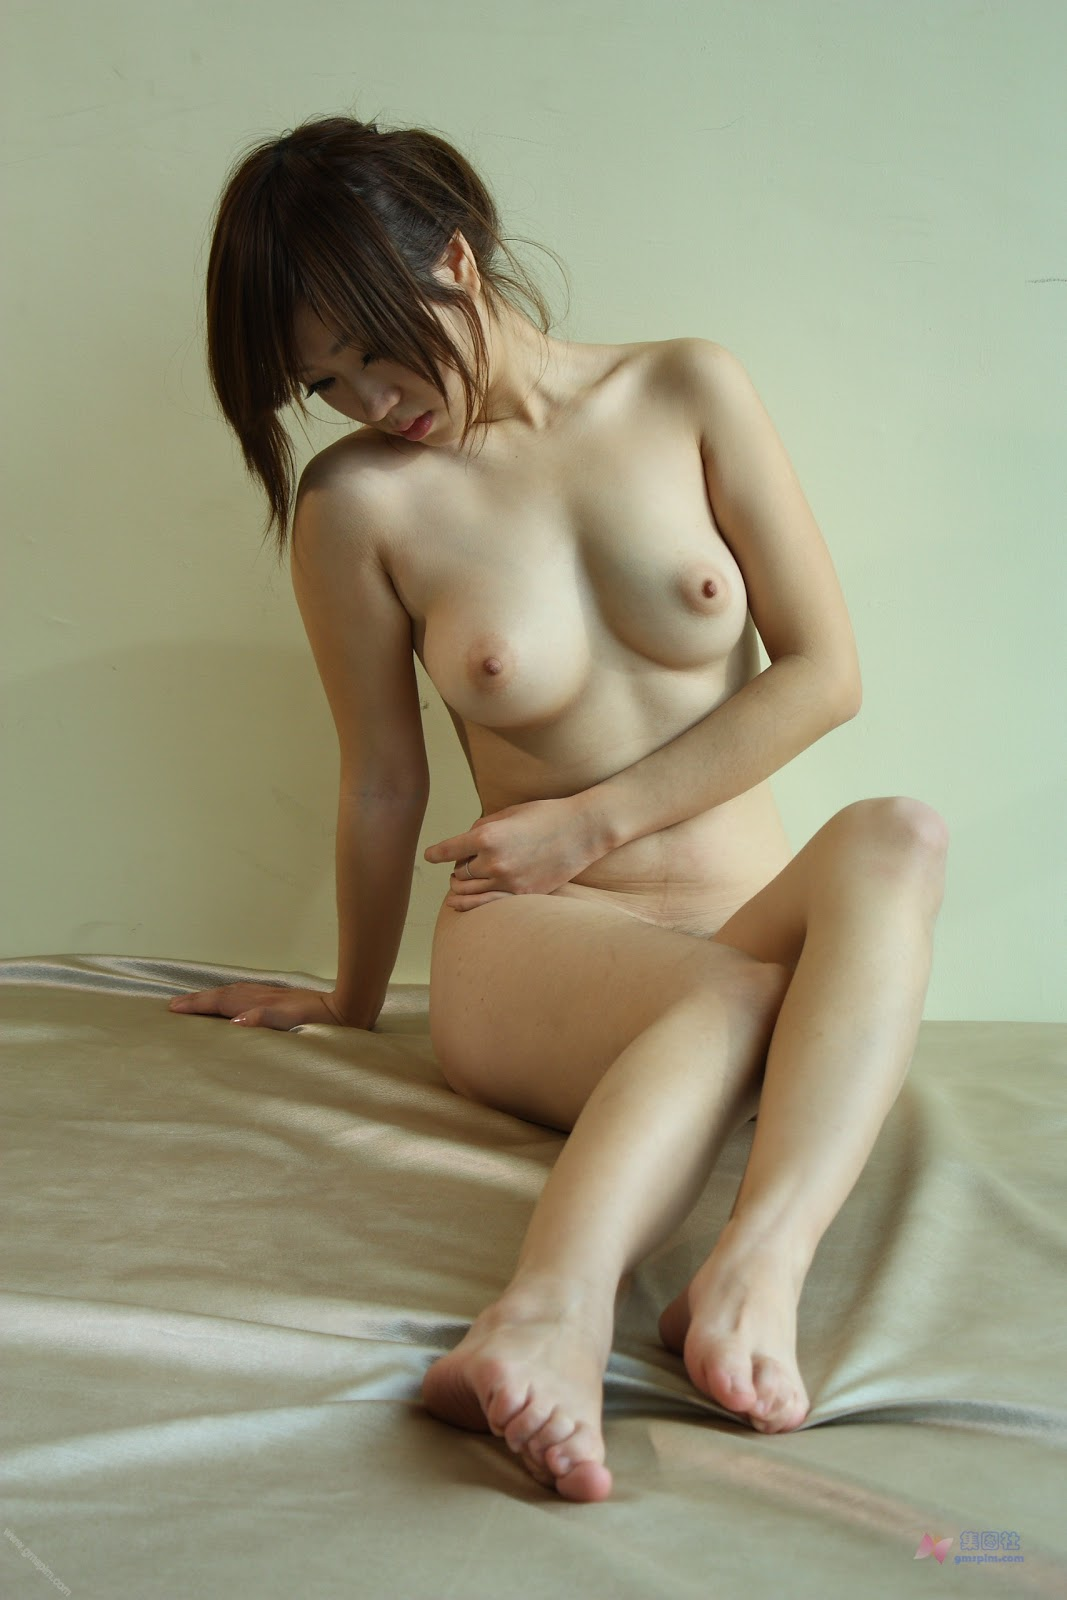 Amateur asian model